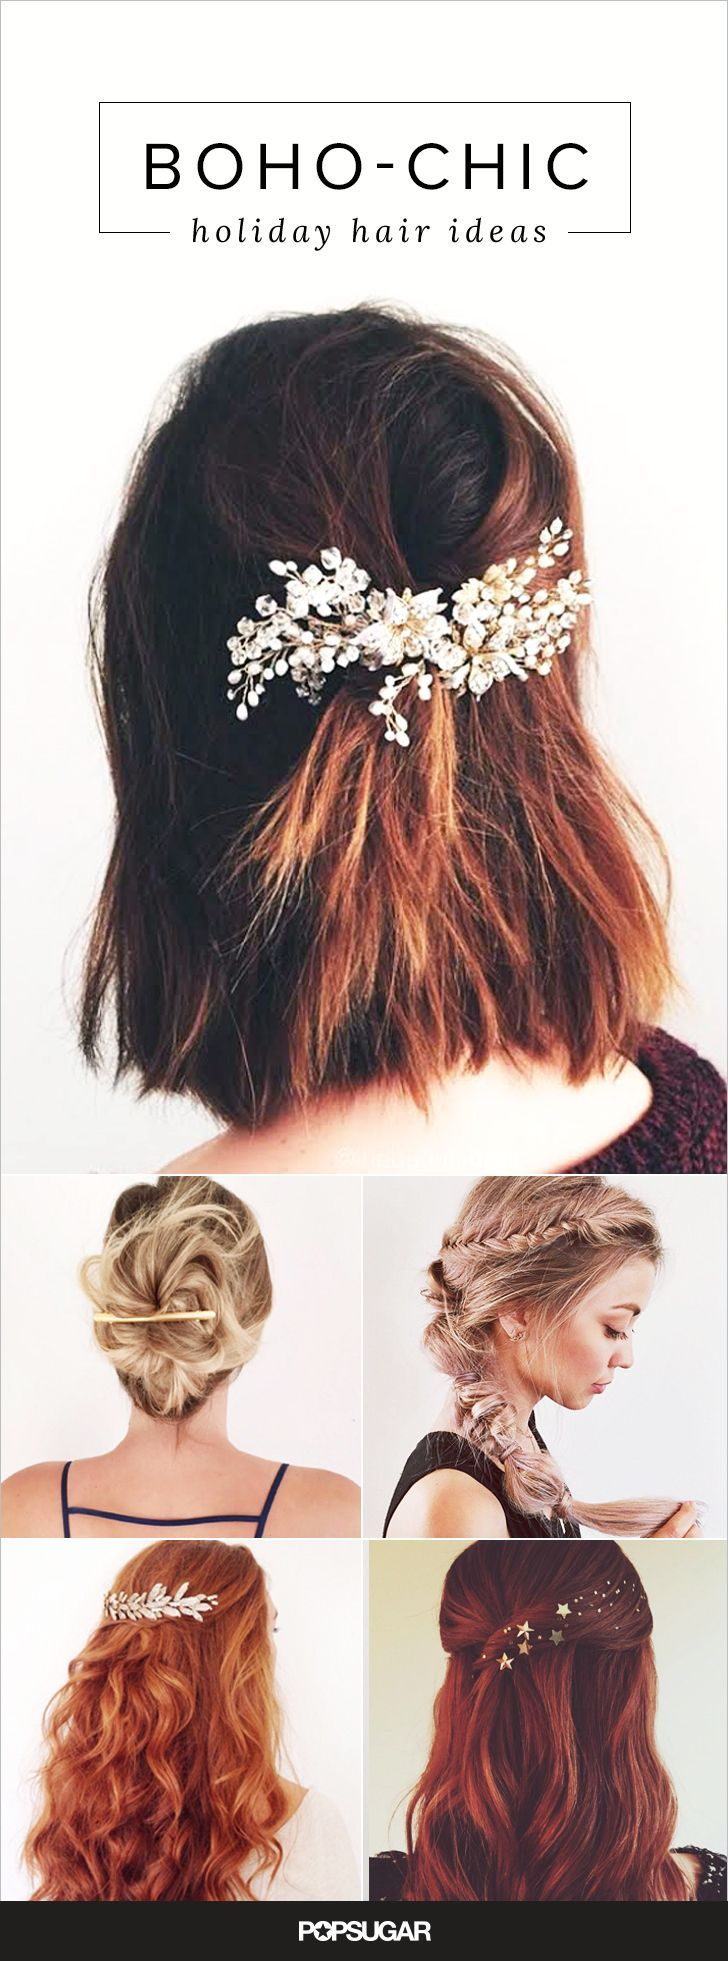 These chic holiday hairstyles will make you want to fast-forward to the holidays. #HolidayHair #Holidays #Hair #HairStyles #Beauty #Beautyinthebag